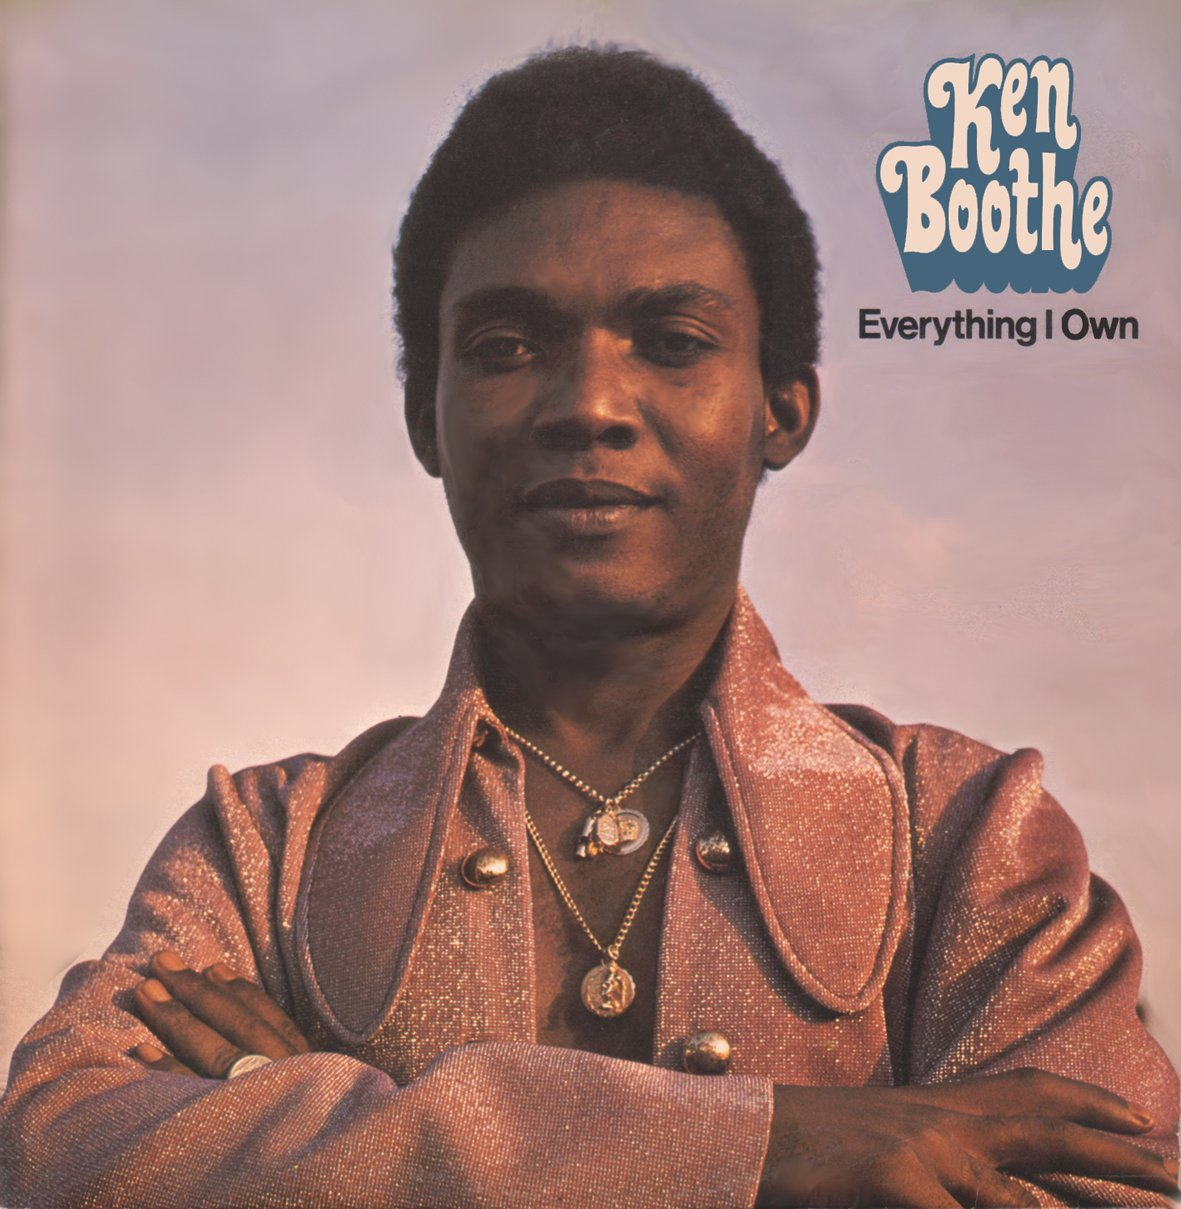 KEN BOOTHE / Everything I Own